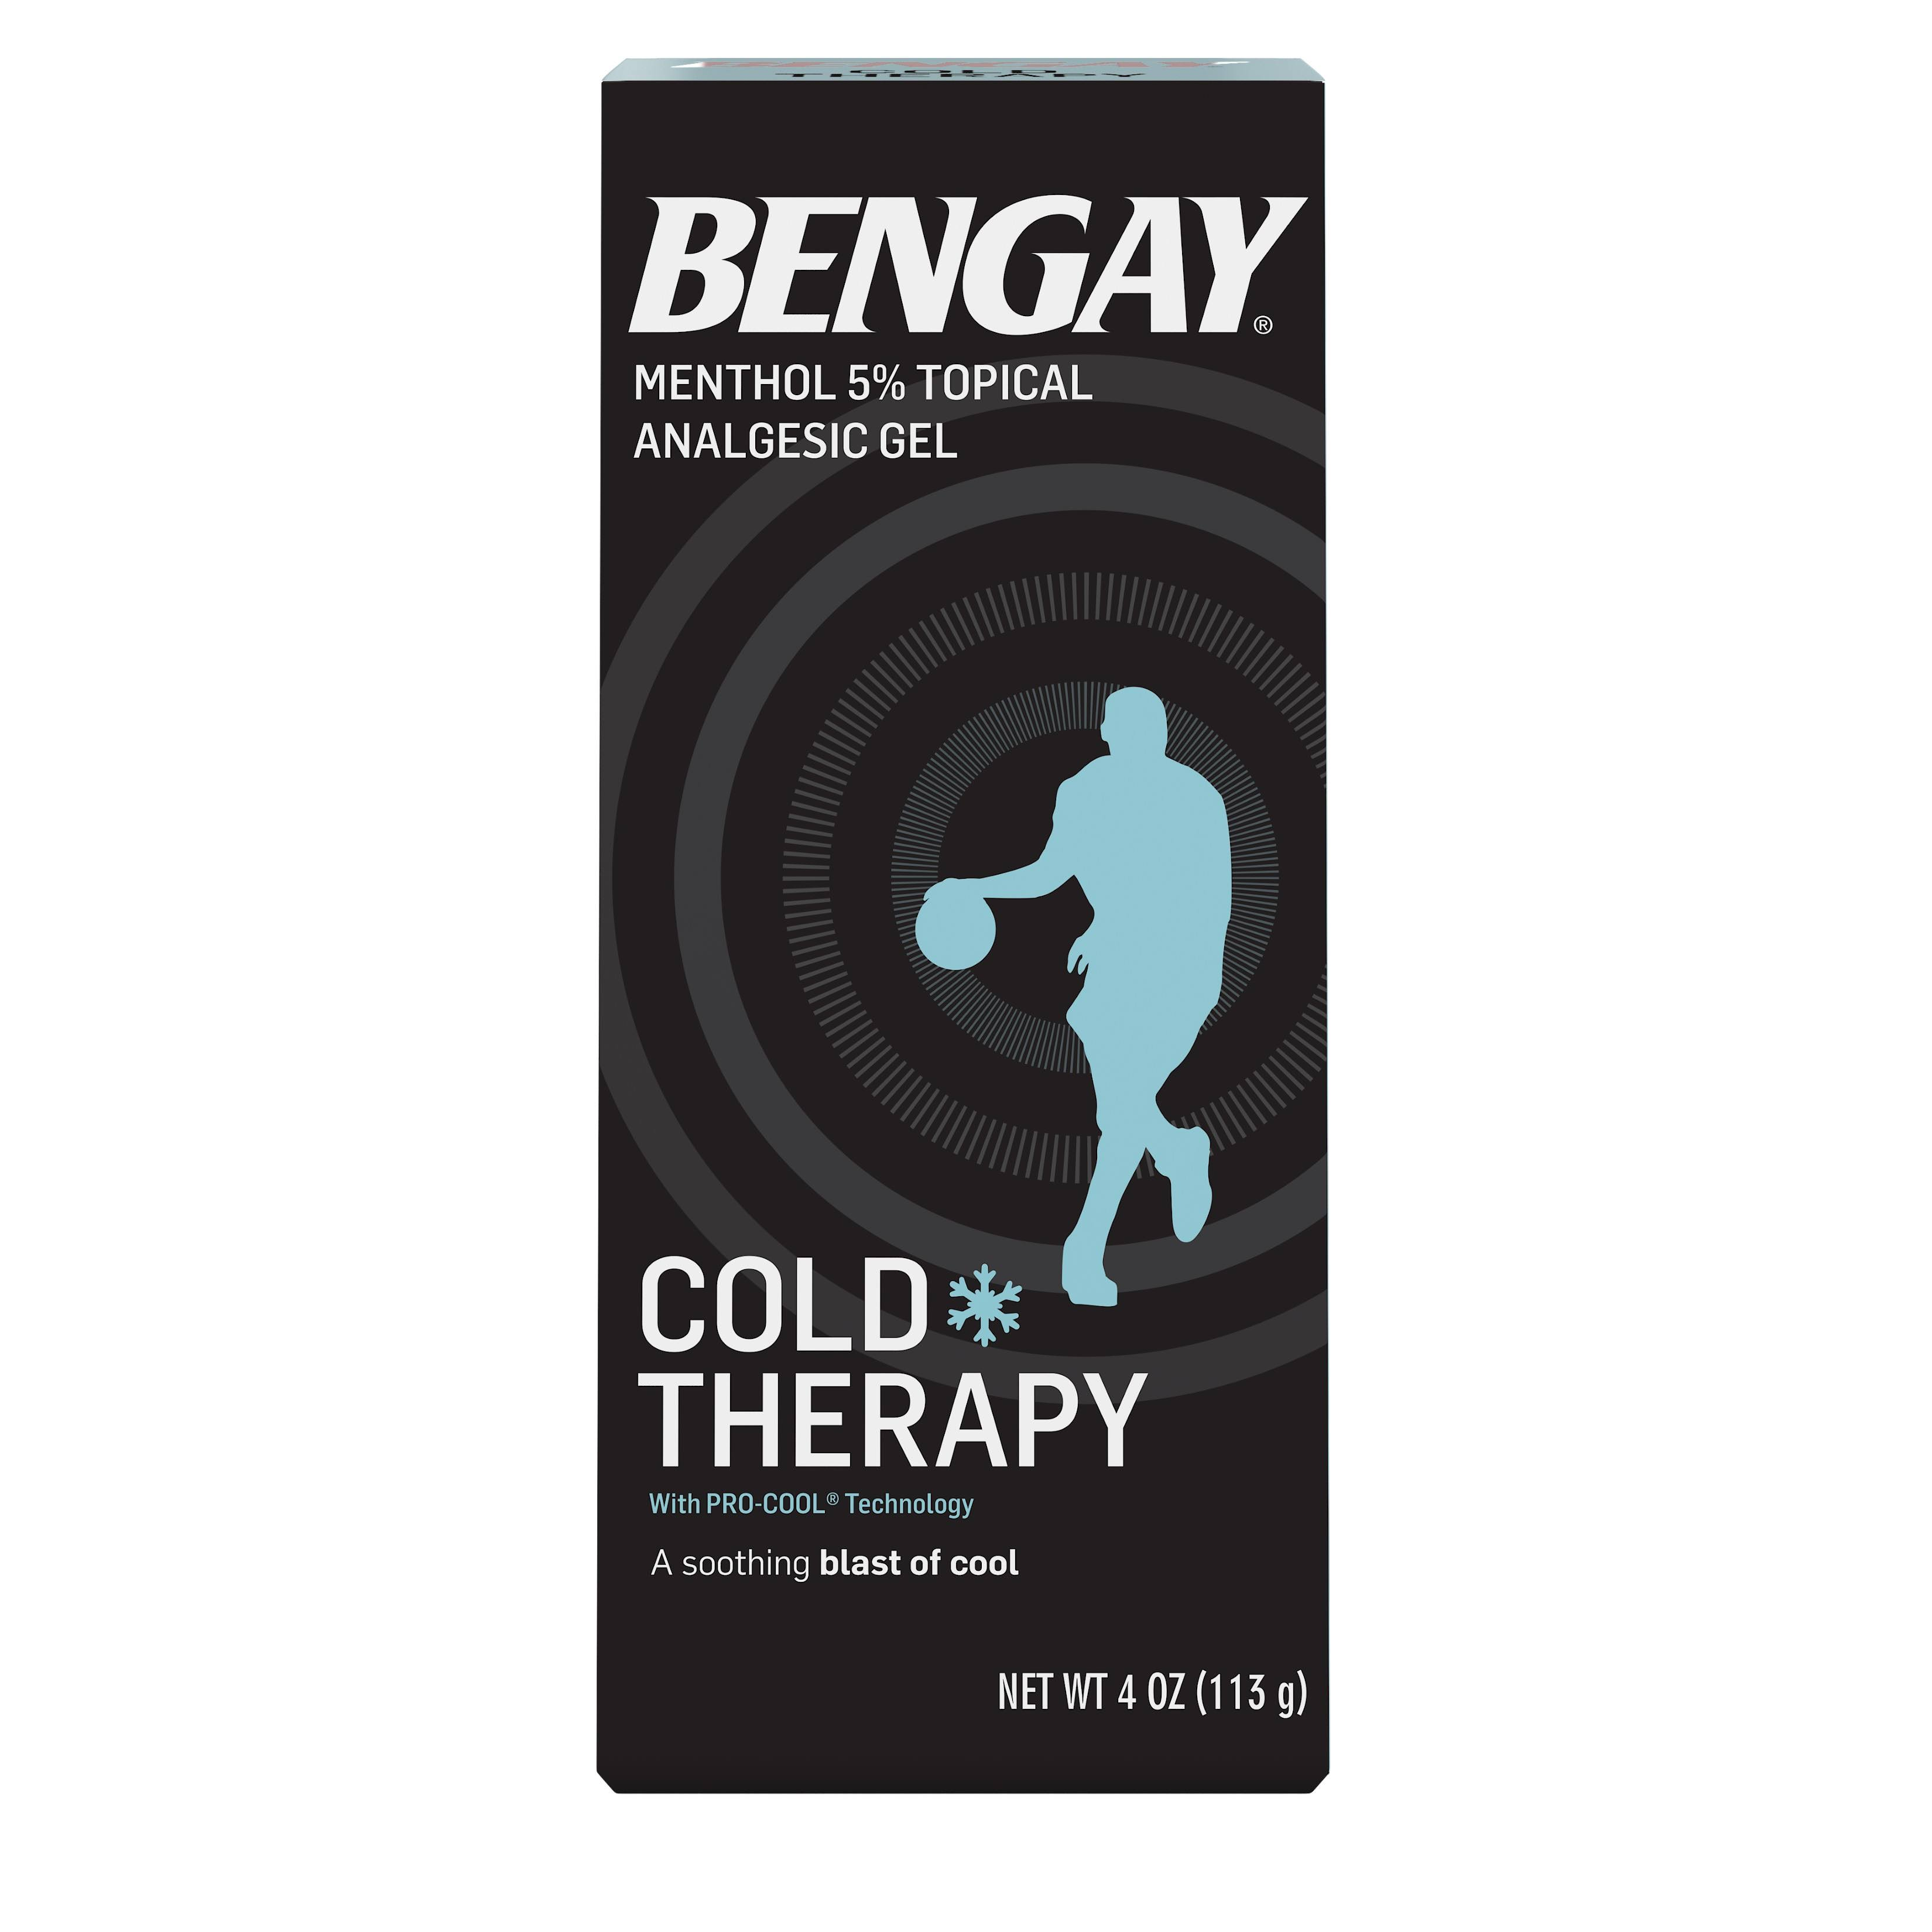 Bengay Cold Therapy Vanishing Scent Menthol Pain Relieving Gel - 4oz